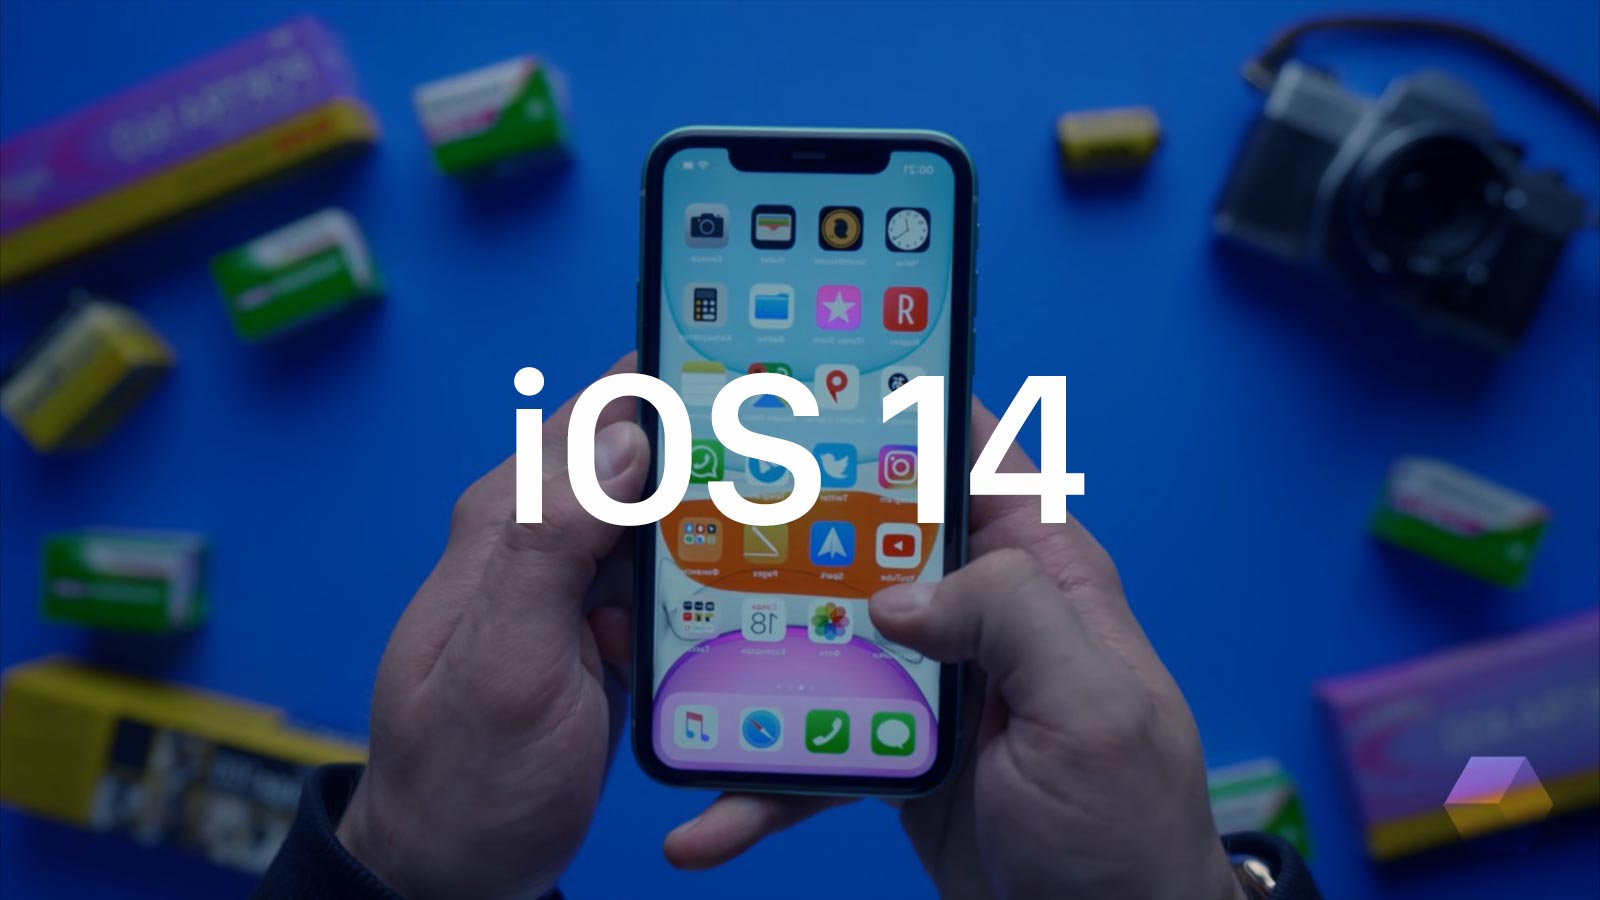 Apple iOS 14 Update to Change the UI Design, iPhones will Sport totally New Look